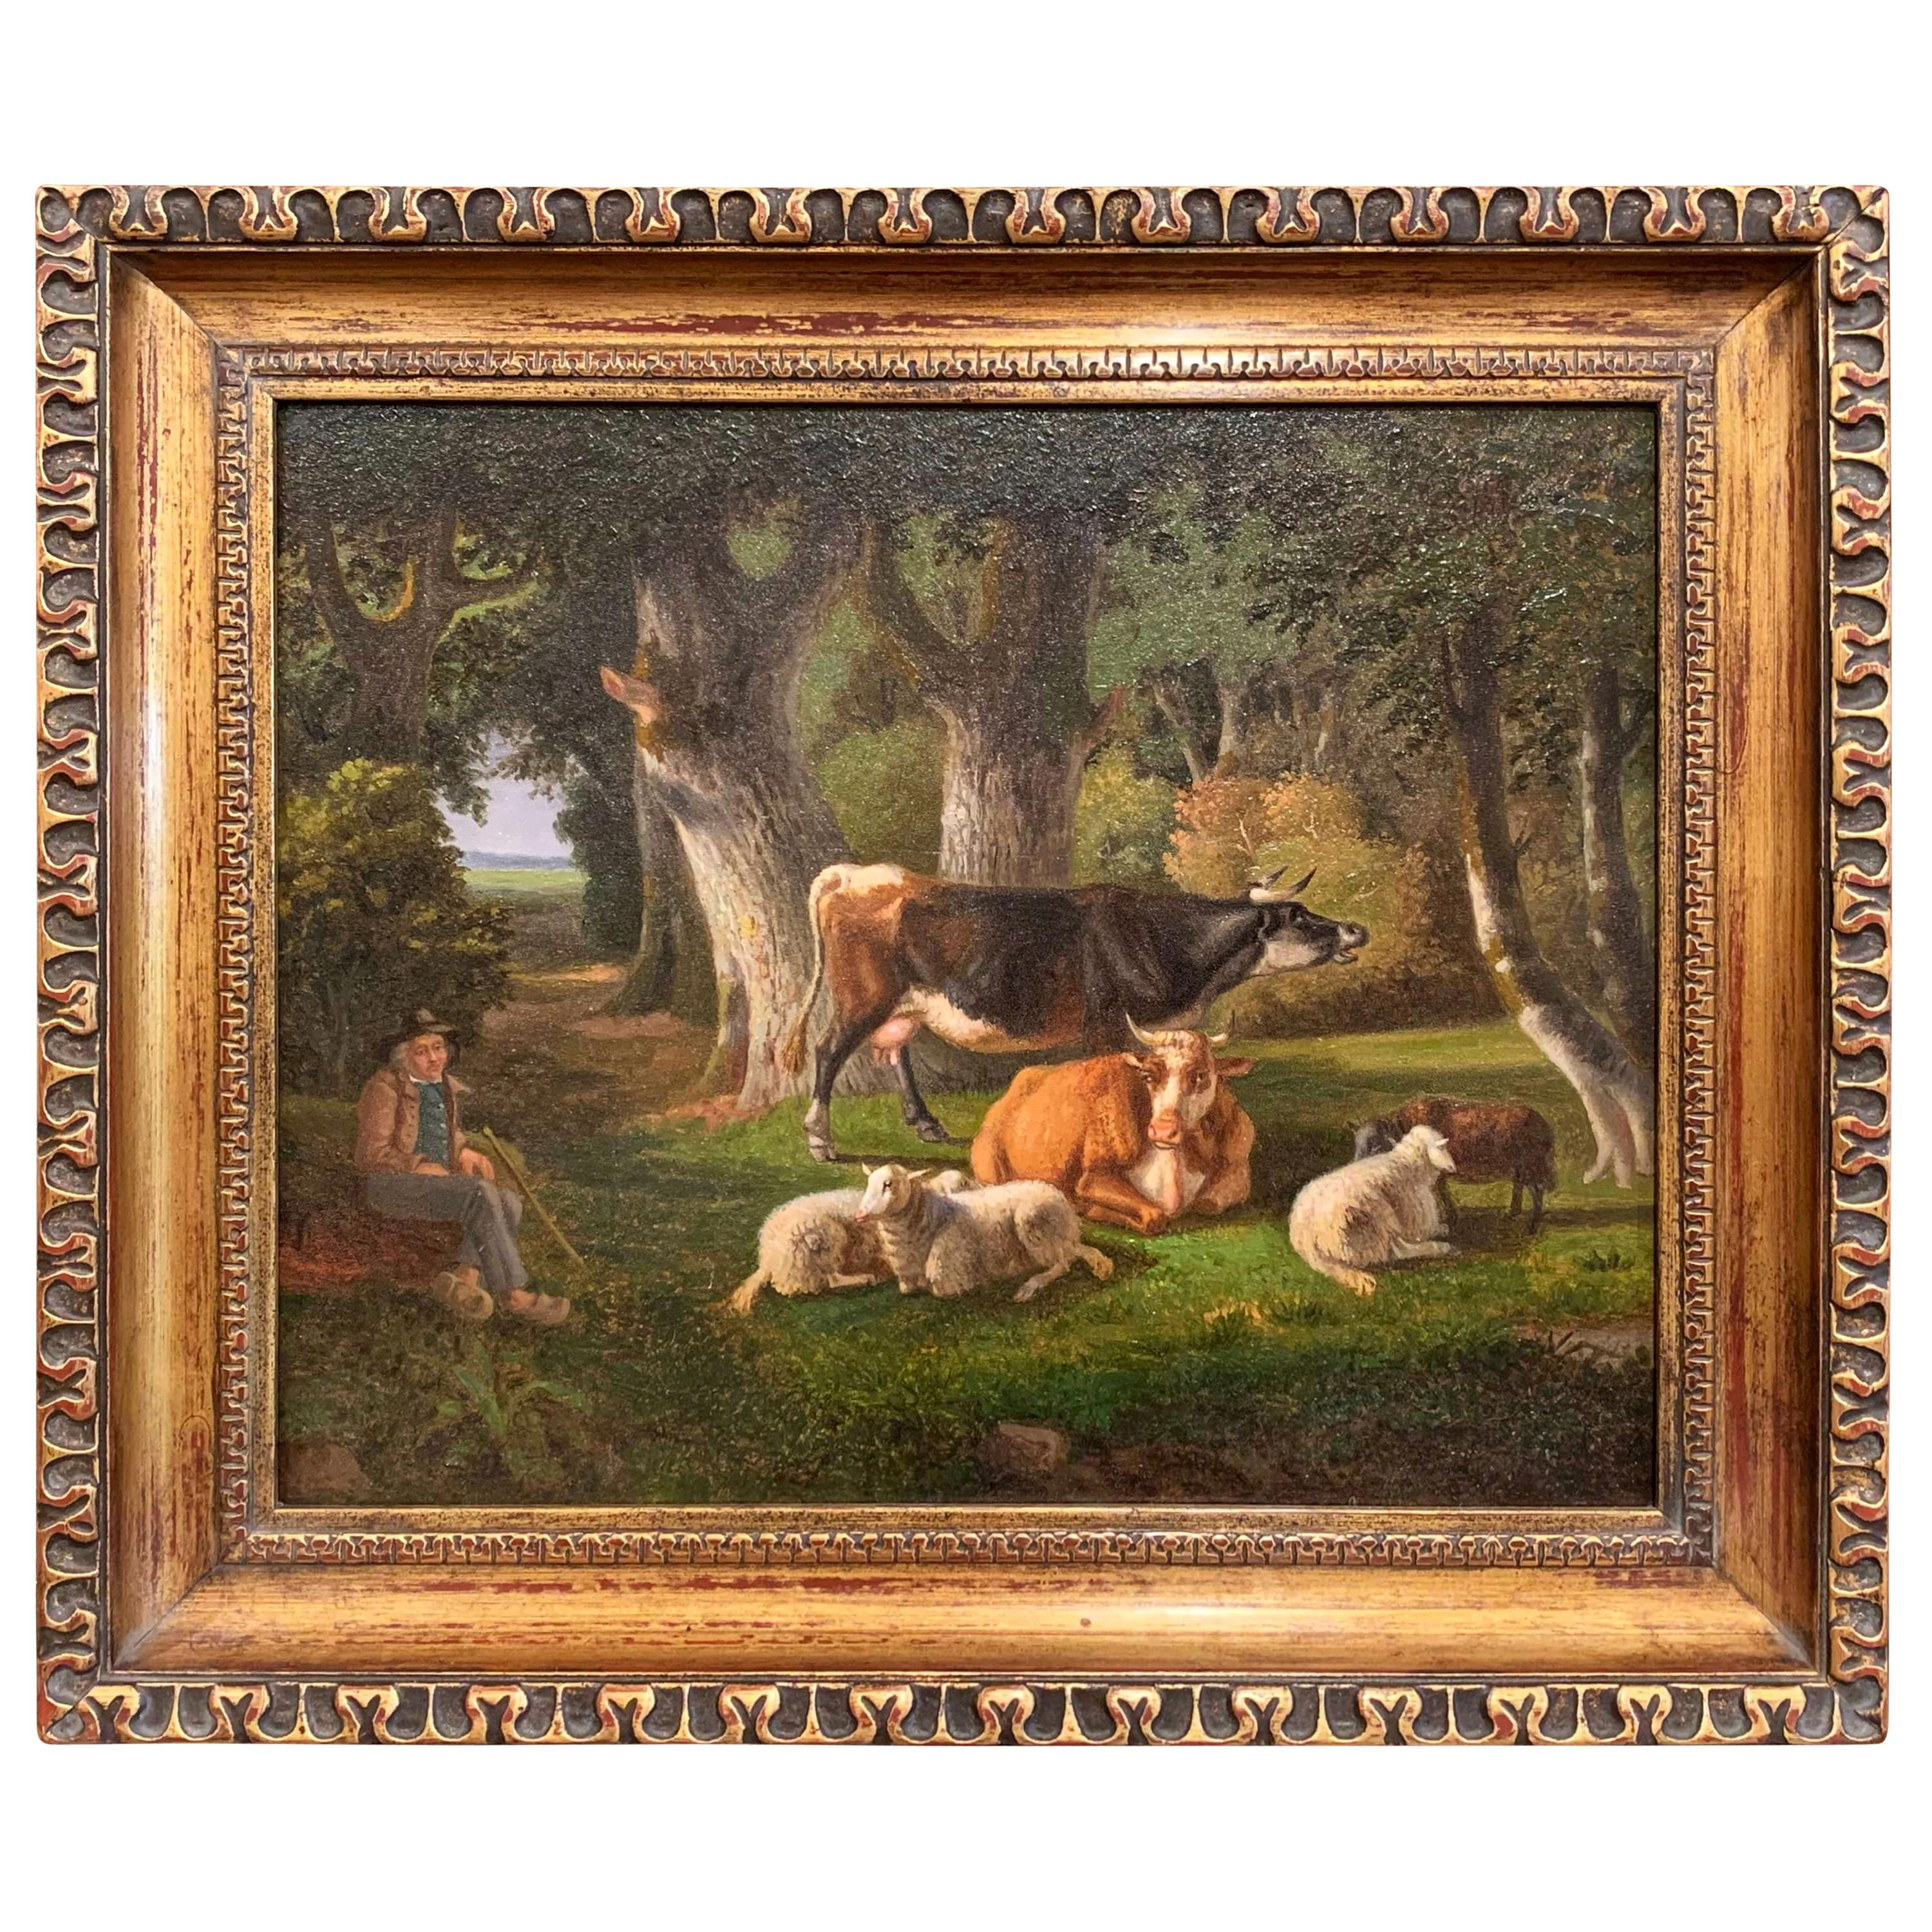 19th Century French Sheep Painting on Board in Carved Giltwood Frame